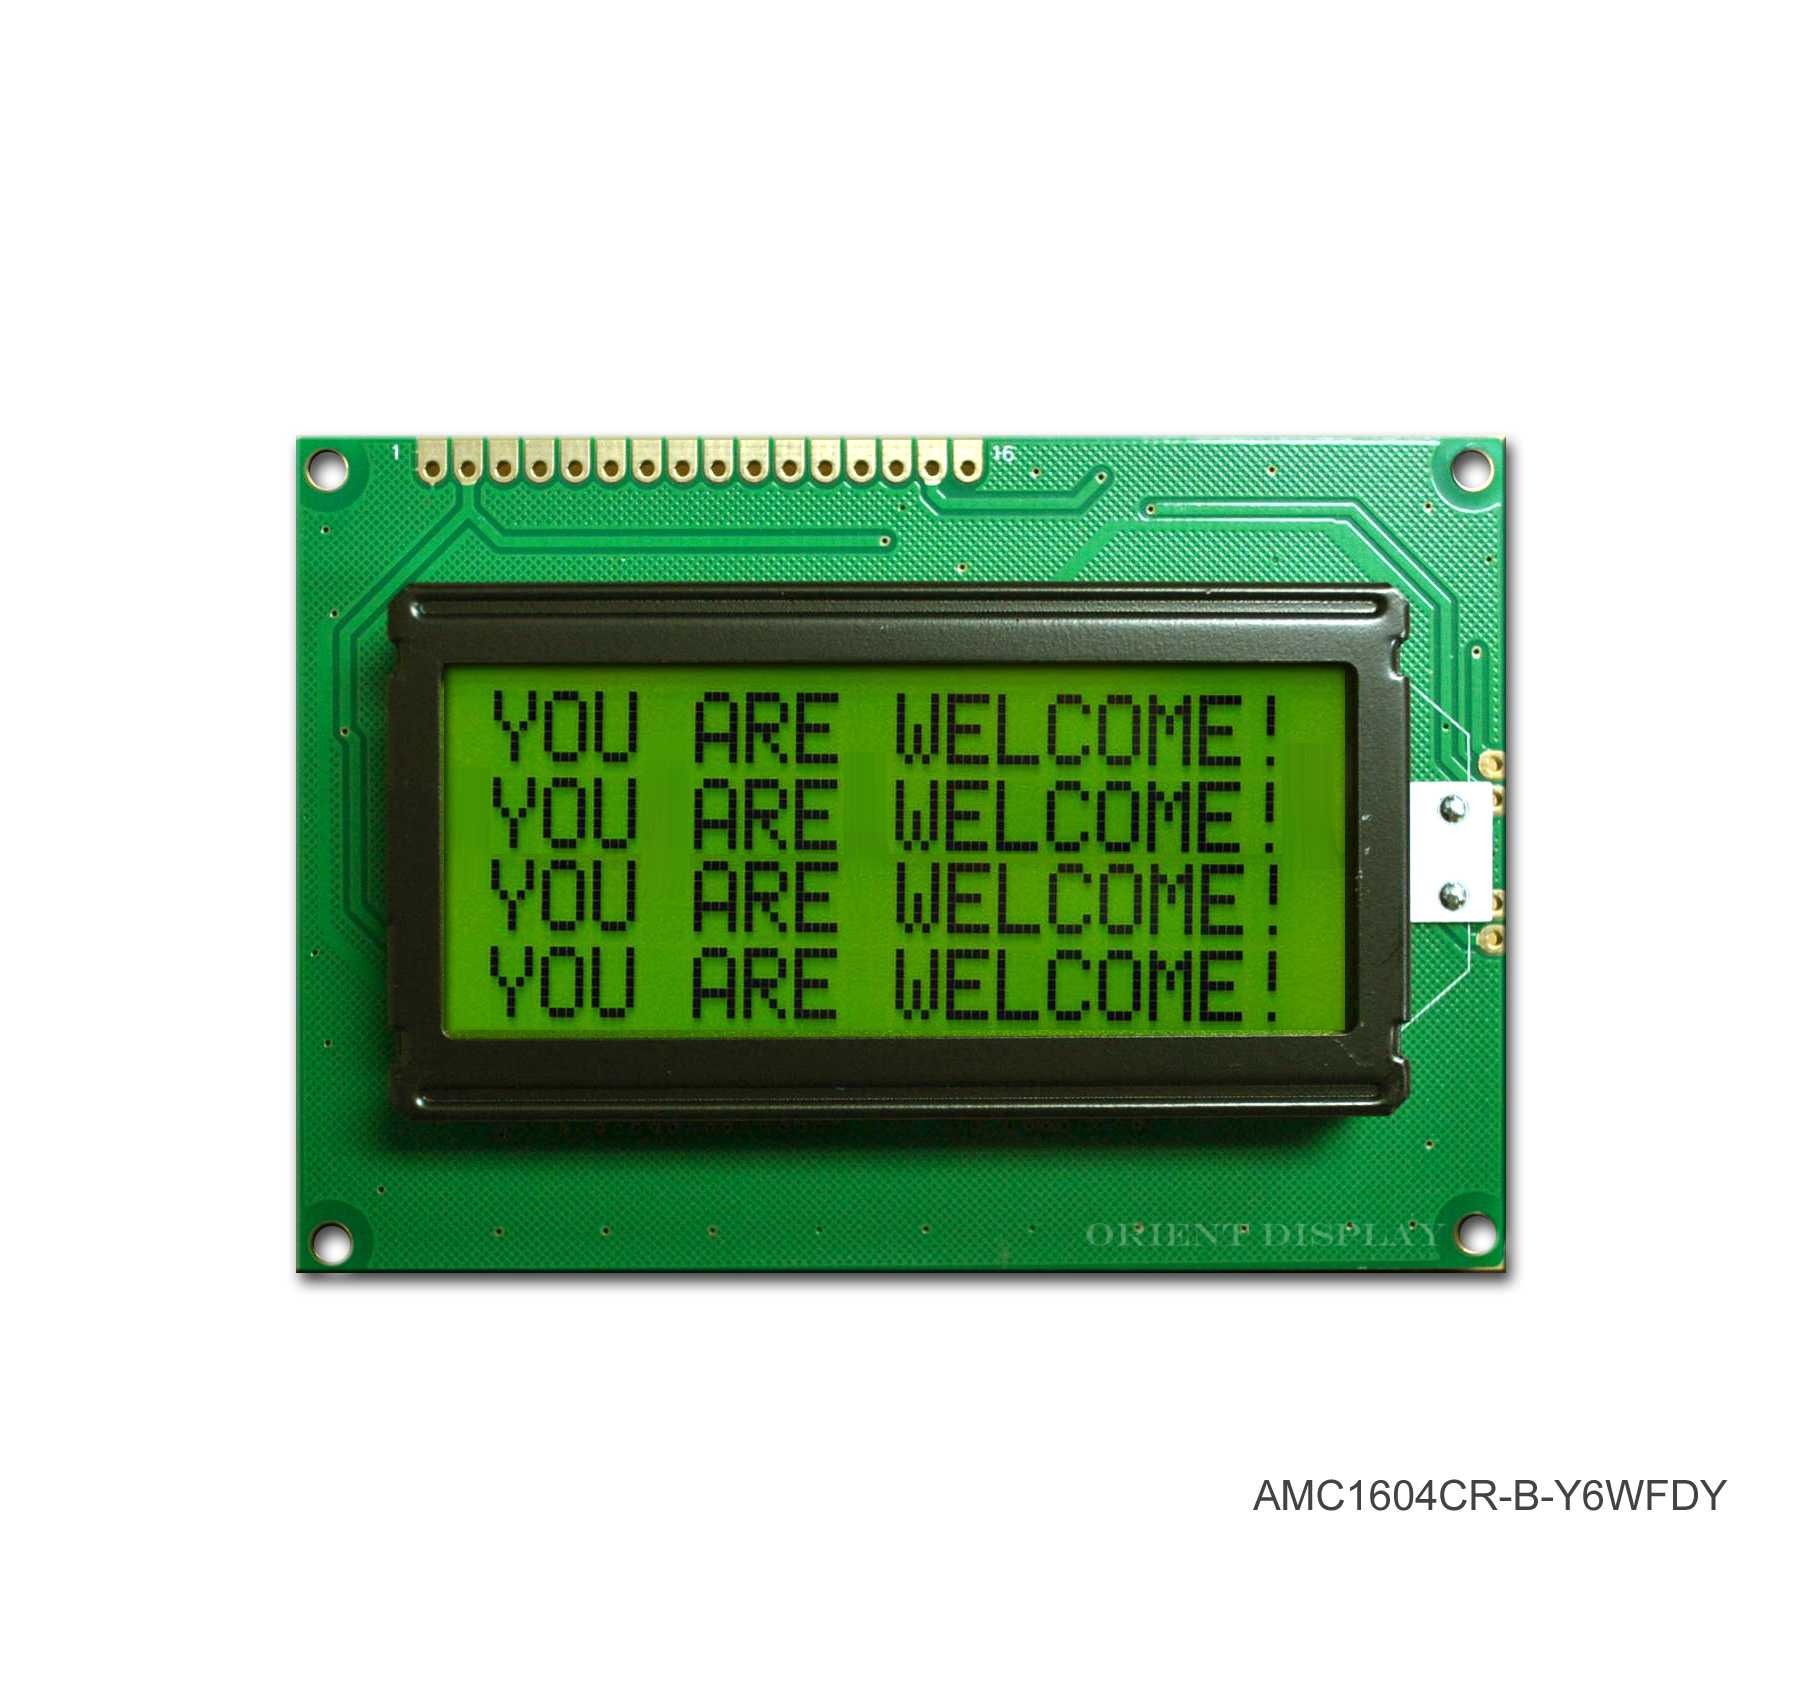 AMC1604CR-B-Y6WFDY (16x4 Character LCD Module)